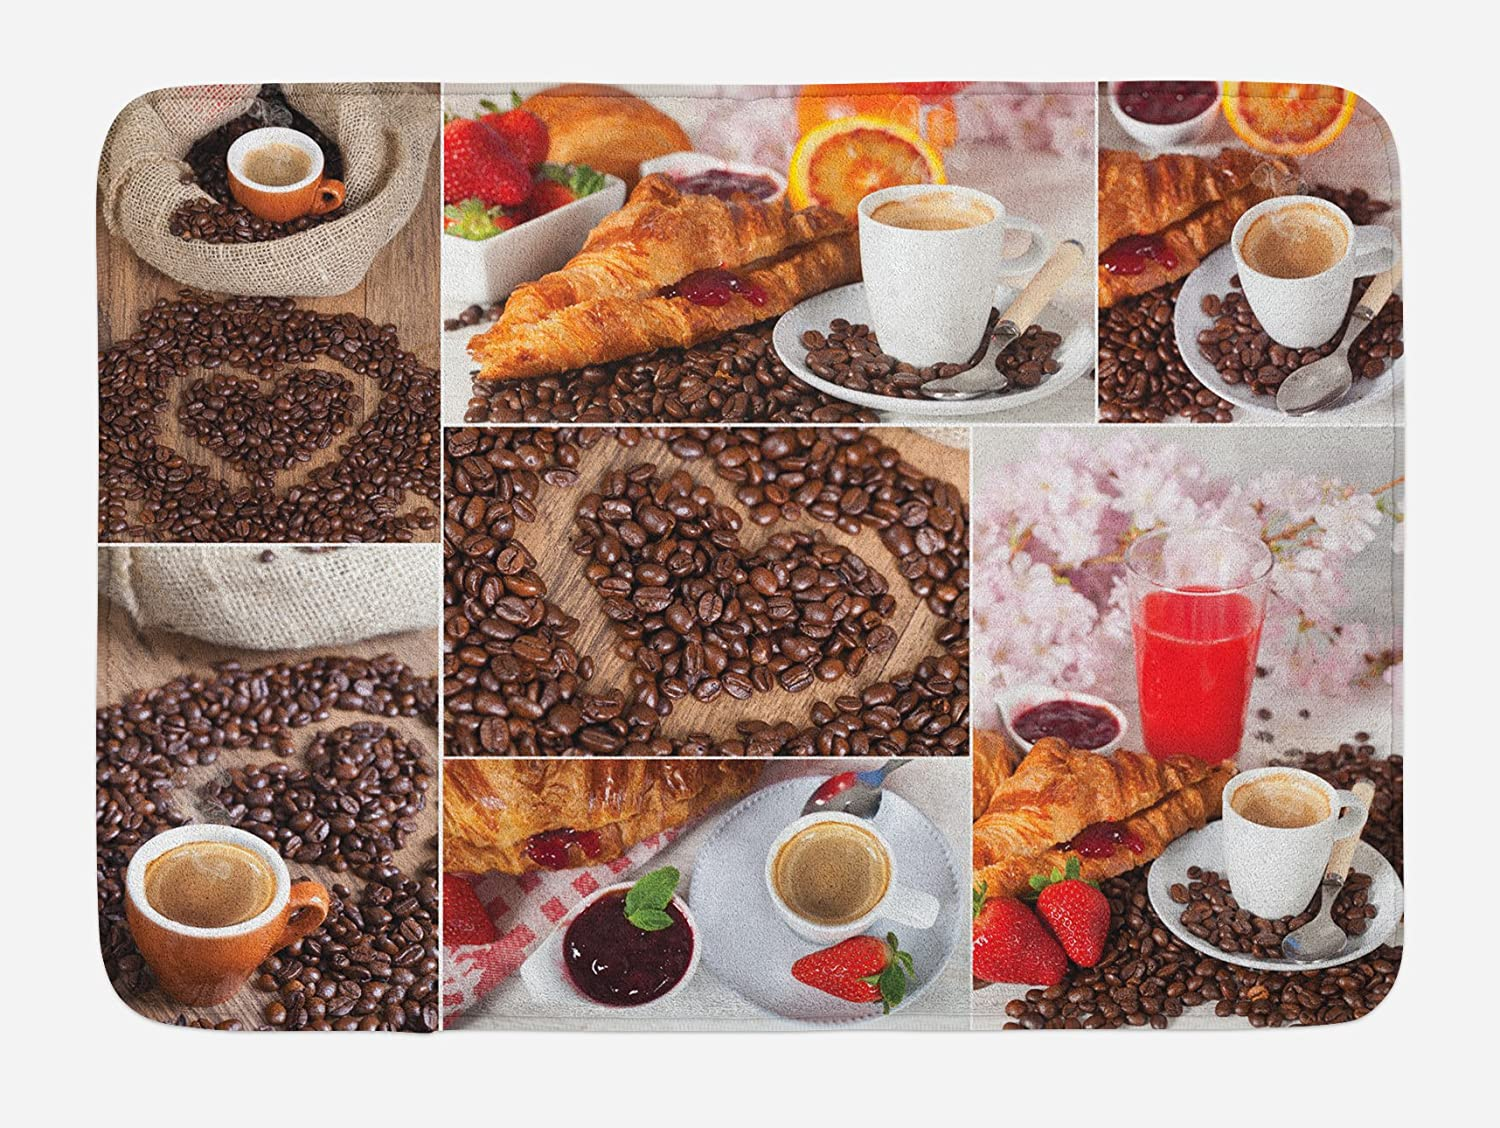 Ambesonne Coffee Bath Mat, Collage of Different Photos Breakfast Theme Croissant Coffee Beans and Strawberries, Plush Bathroom Decor Mat with Non Slip Backing, 29.5